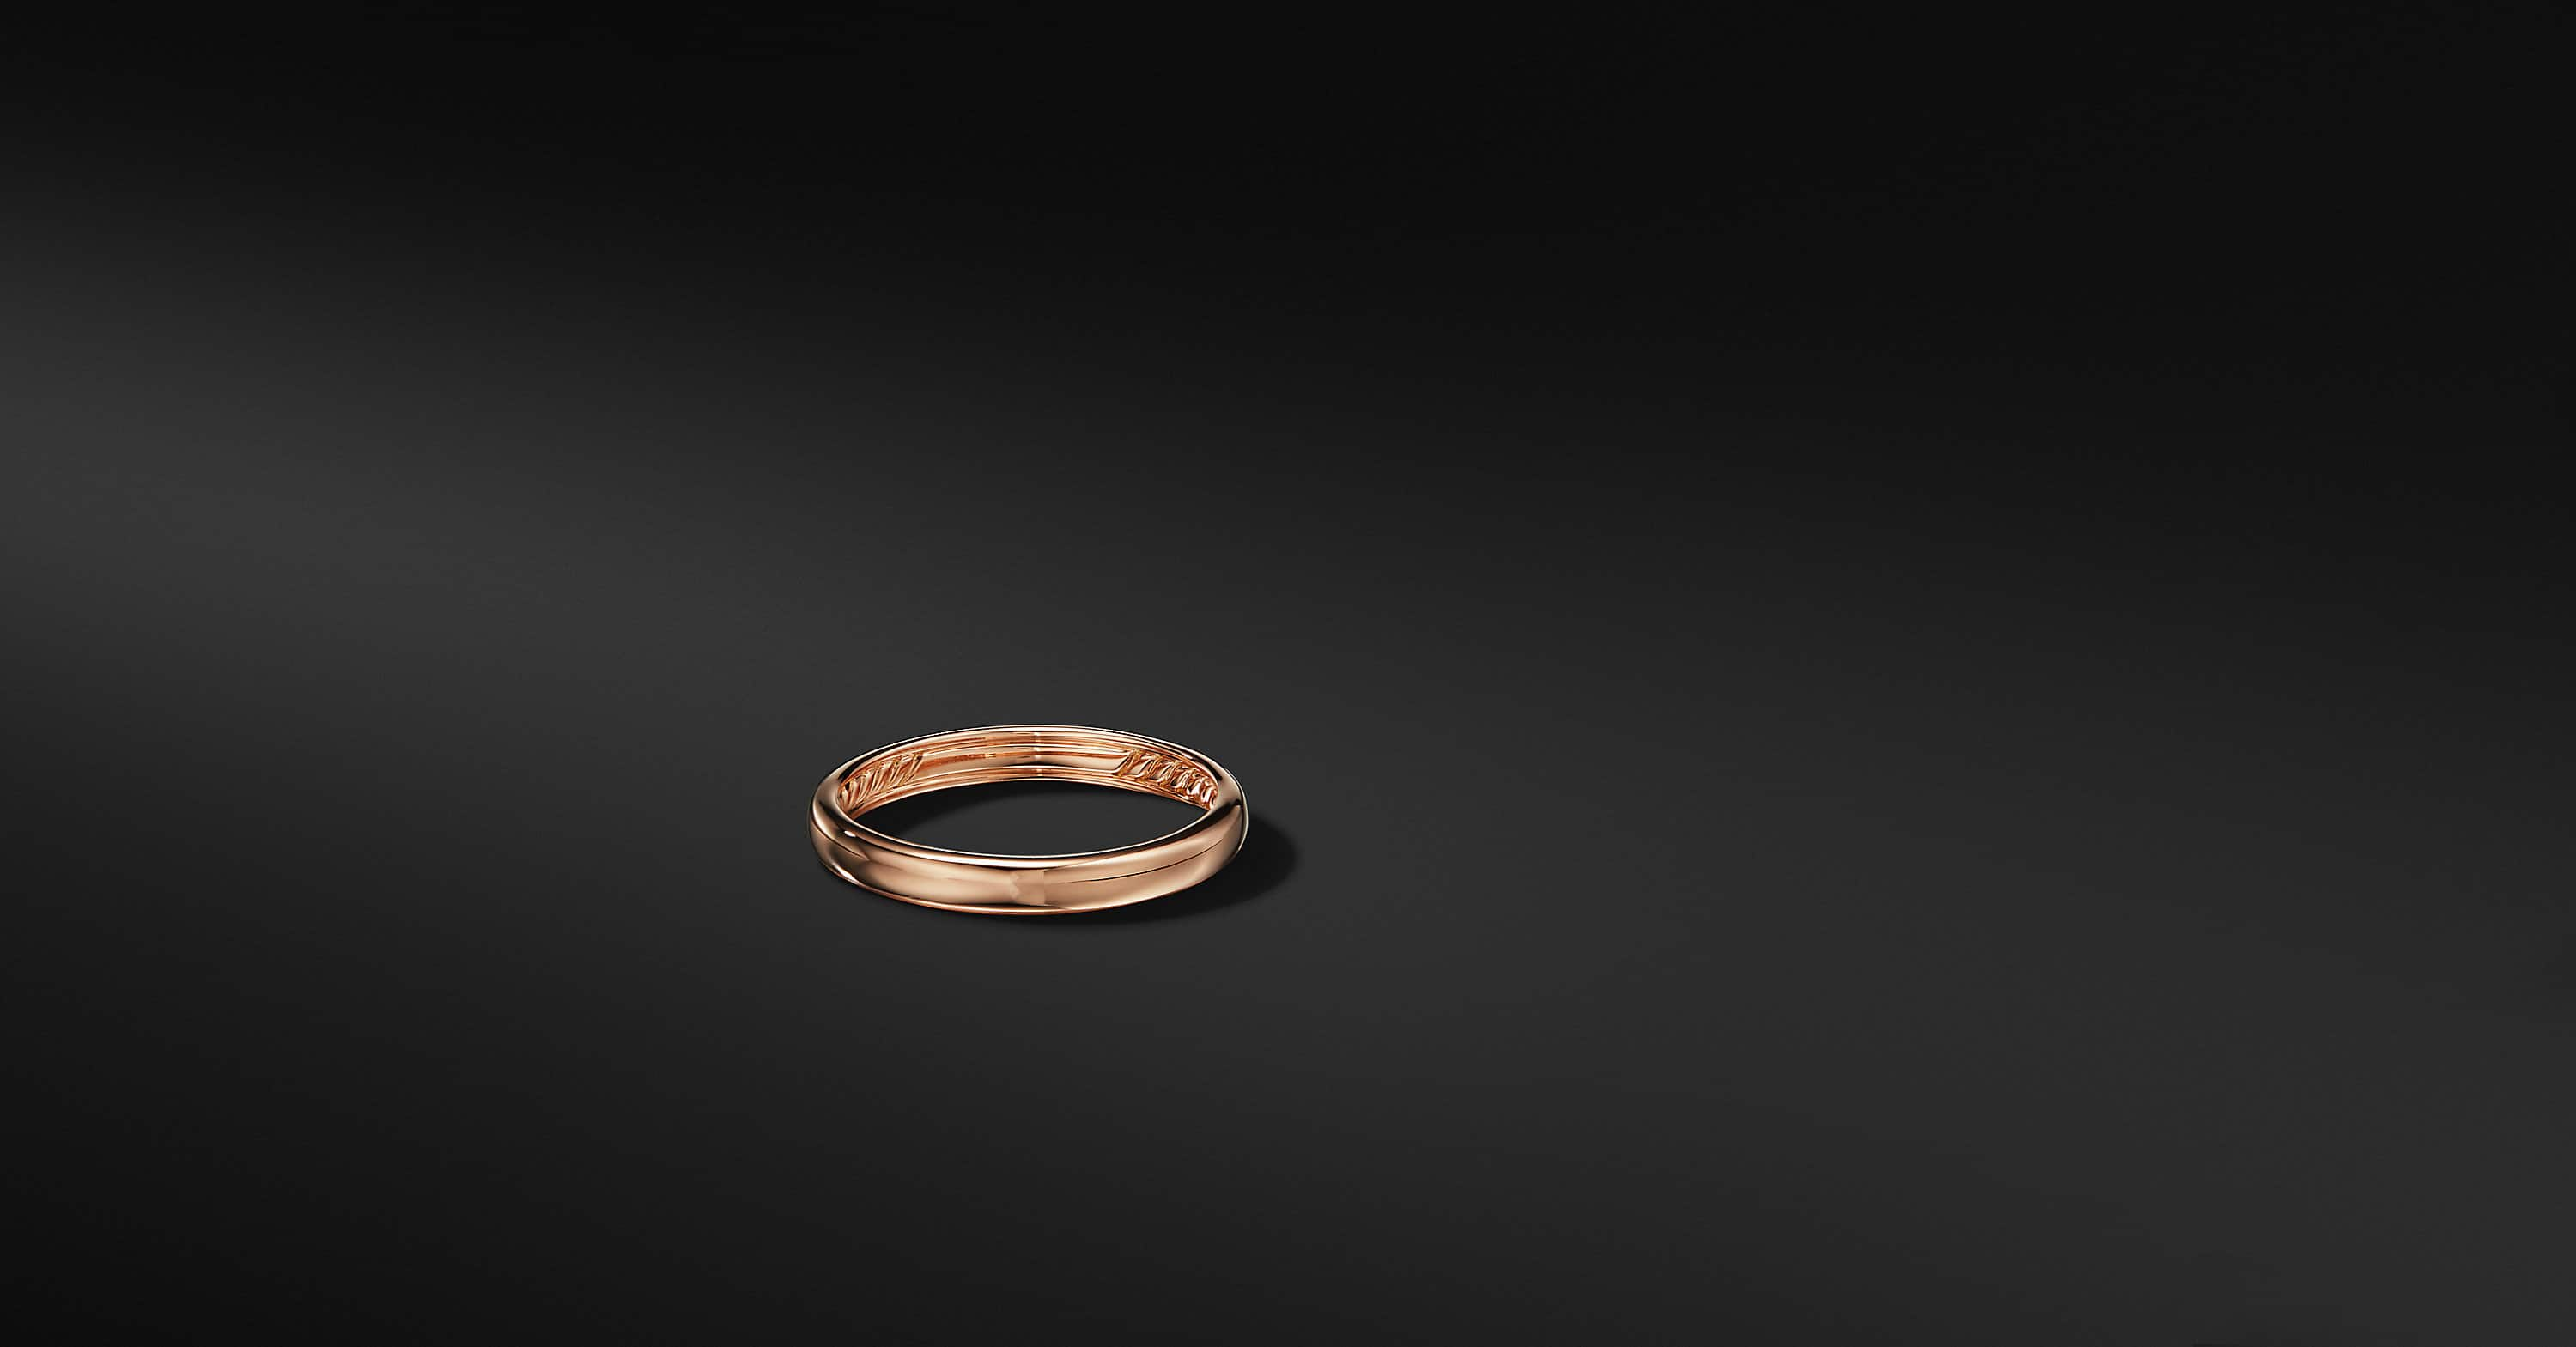 DY Classic Band in 18K Rose Gold, 3.5mm